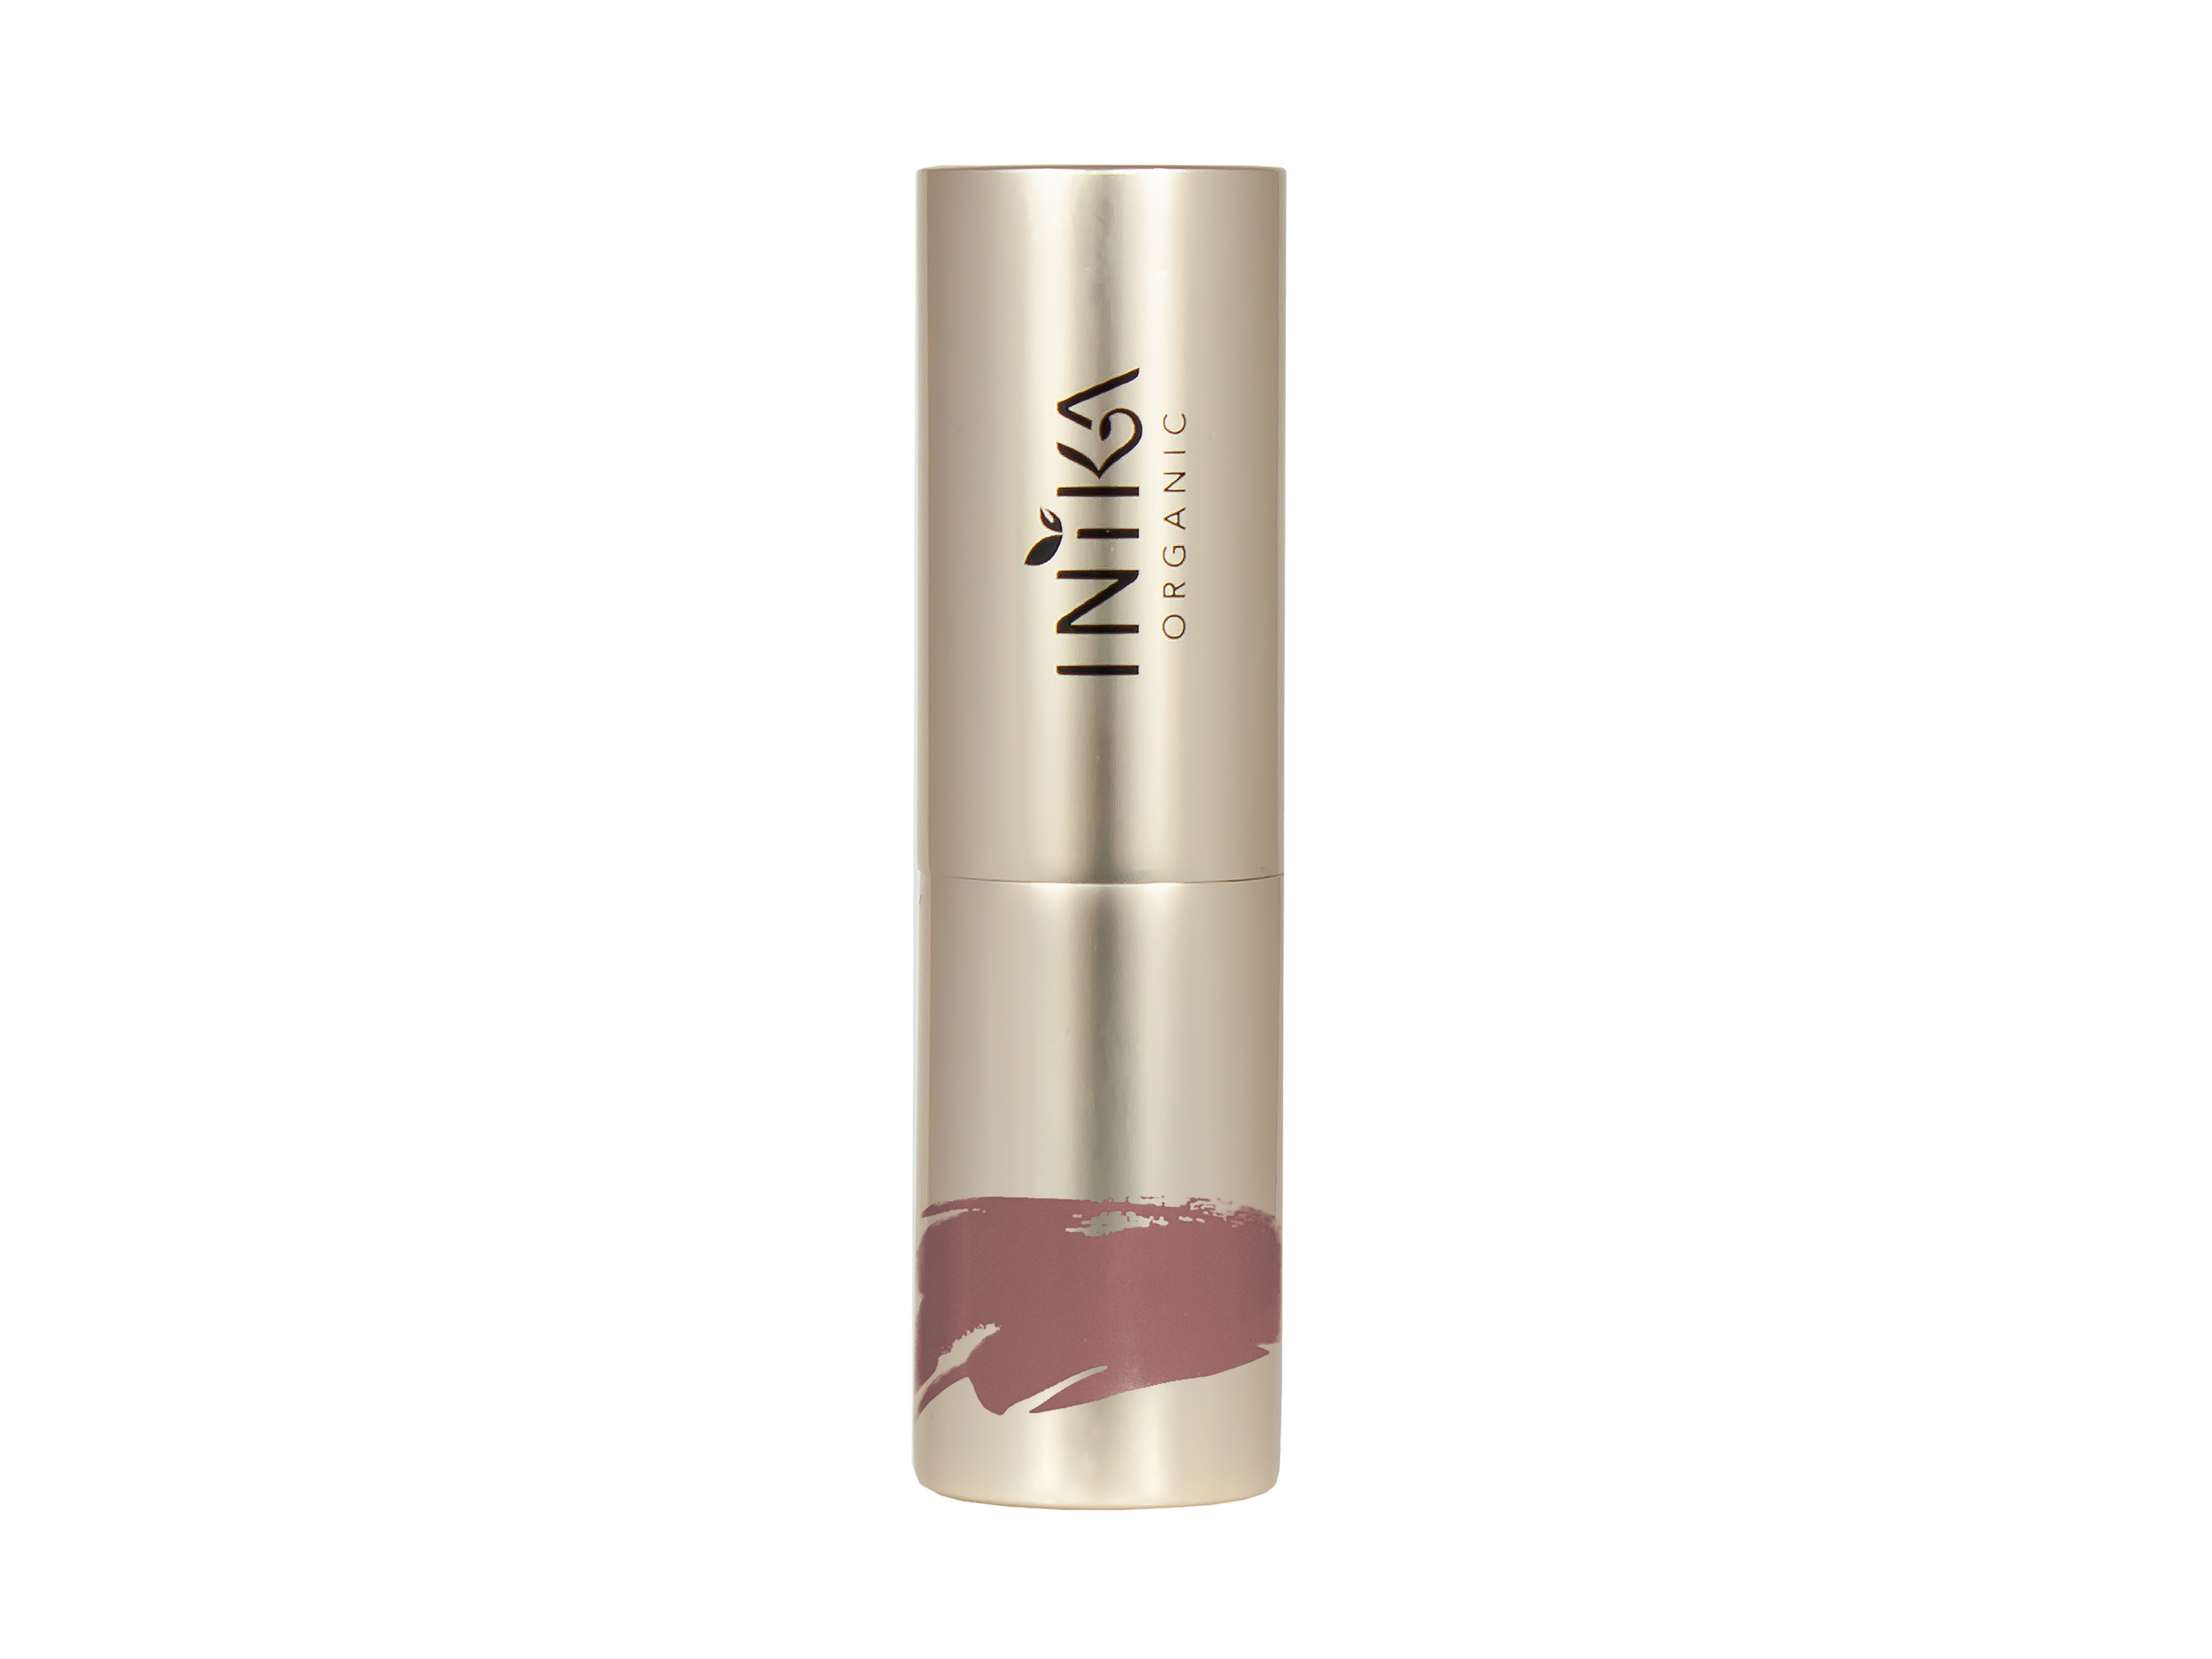 INIKA Organic Limited Edition Vegan Lipstick, Spring Bloom, 4 gram